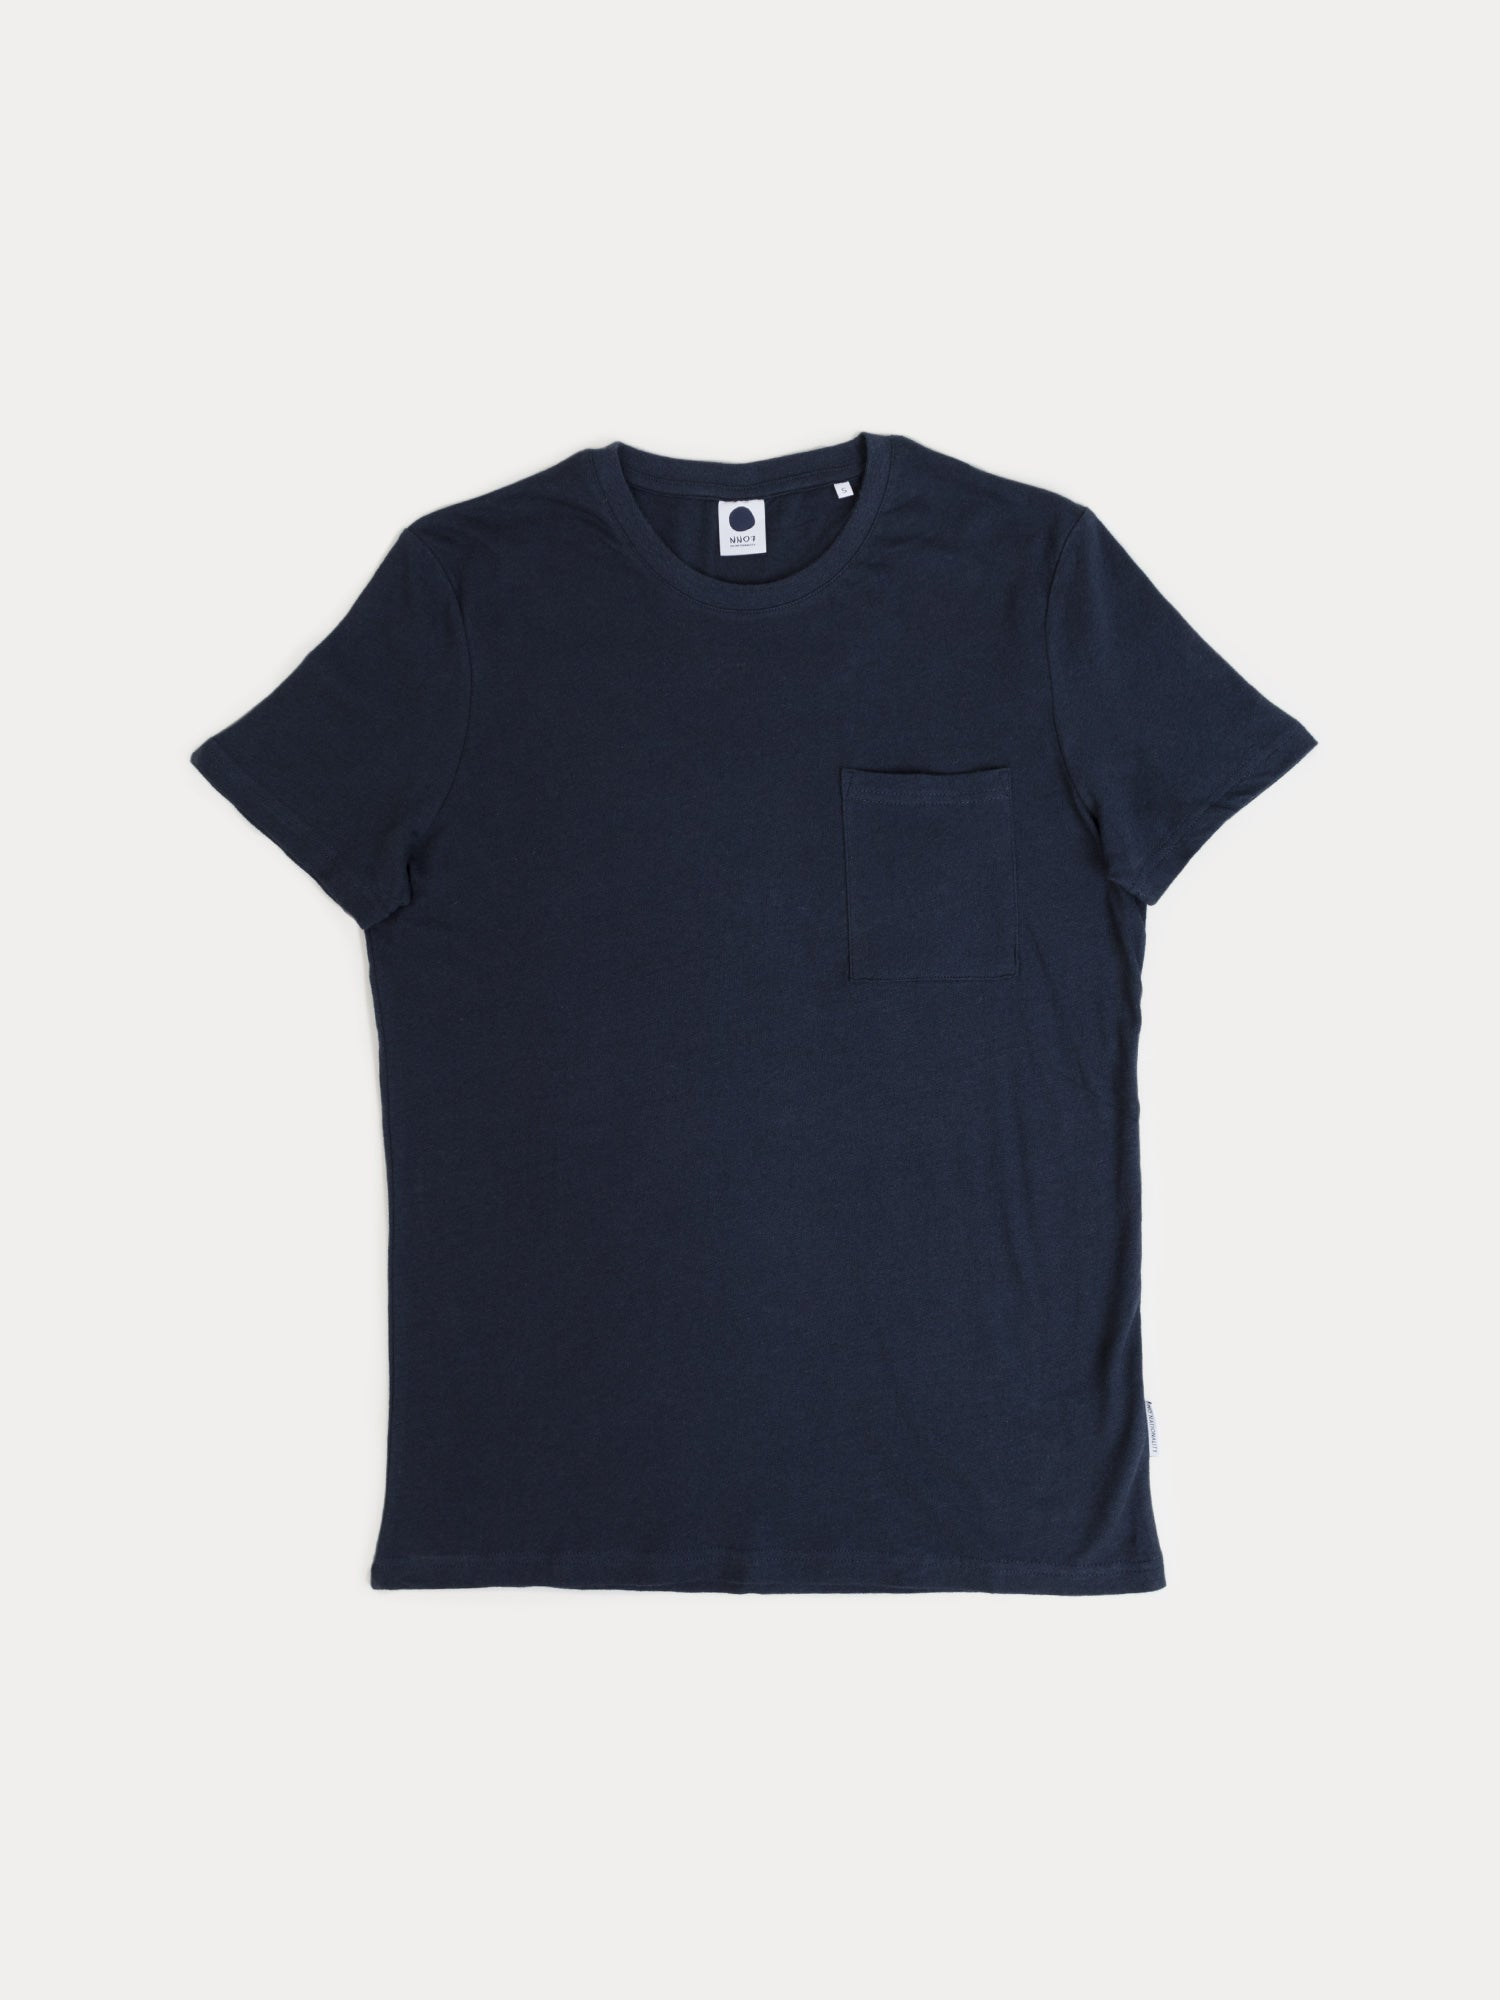 NN07 Barry Pocket T-Shirt (Navy Blue)